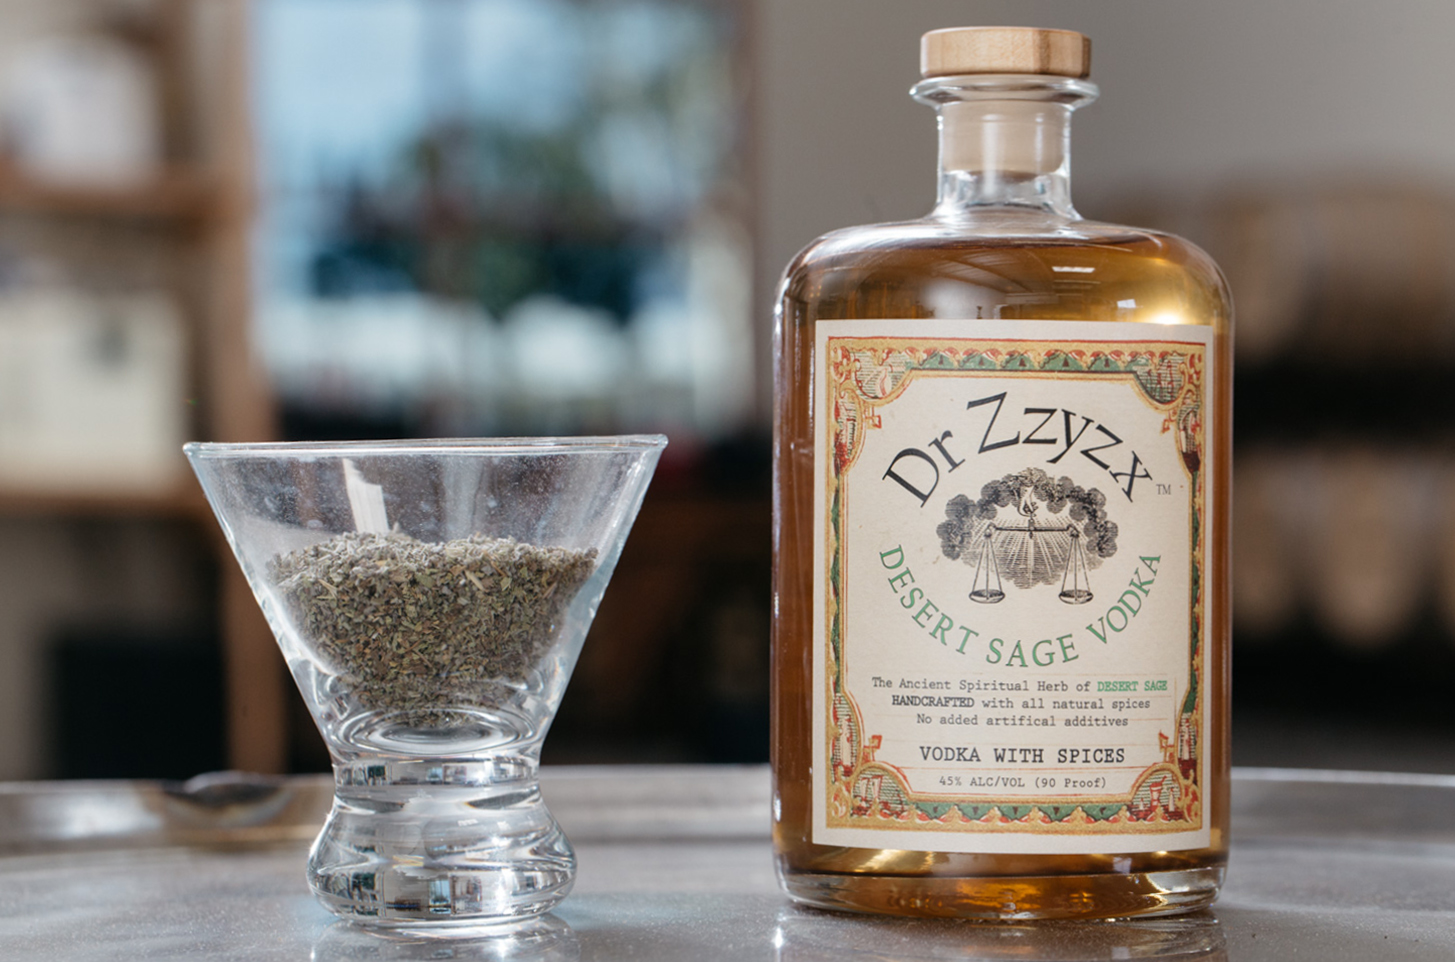 DESERT SAGE - The great outdoors in a bottle. Our Desert Sage vodka captures the fresh, invigorating breeze of sage-filled desert air. Infused with a blend of mediterranean & white sage.100% corn, gluten free & all-natural. NO ADDITIVES.